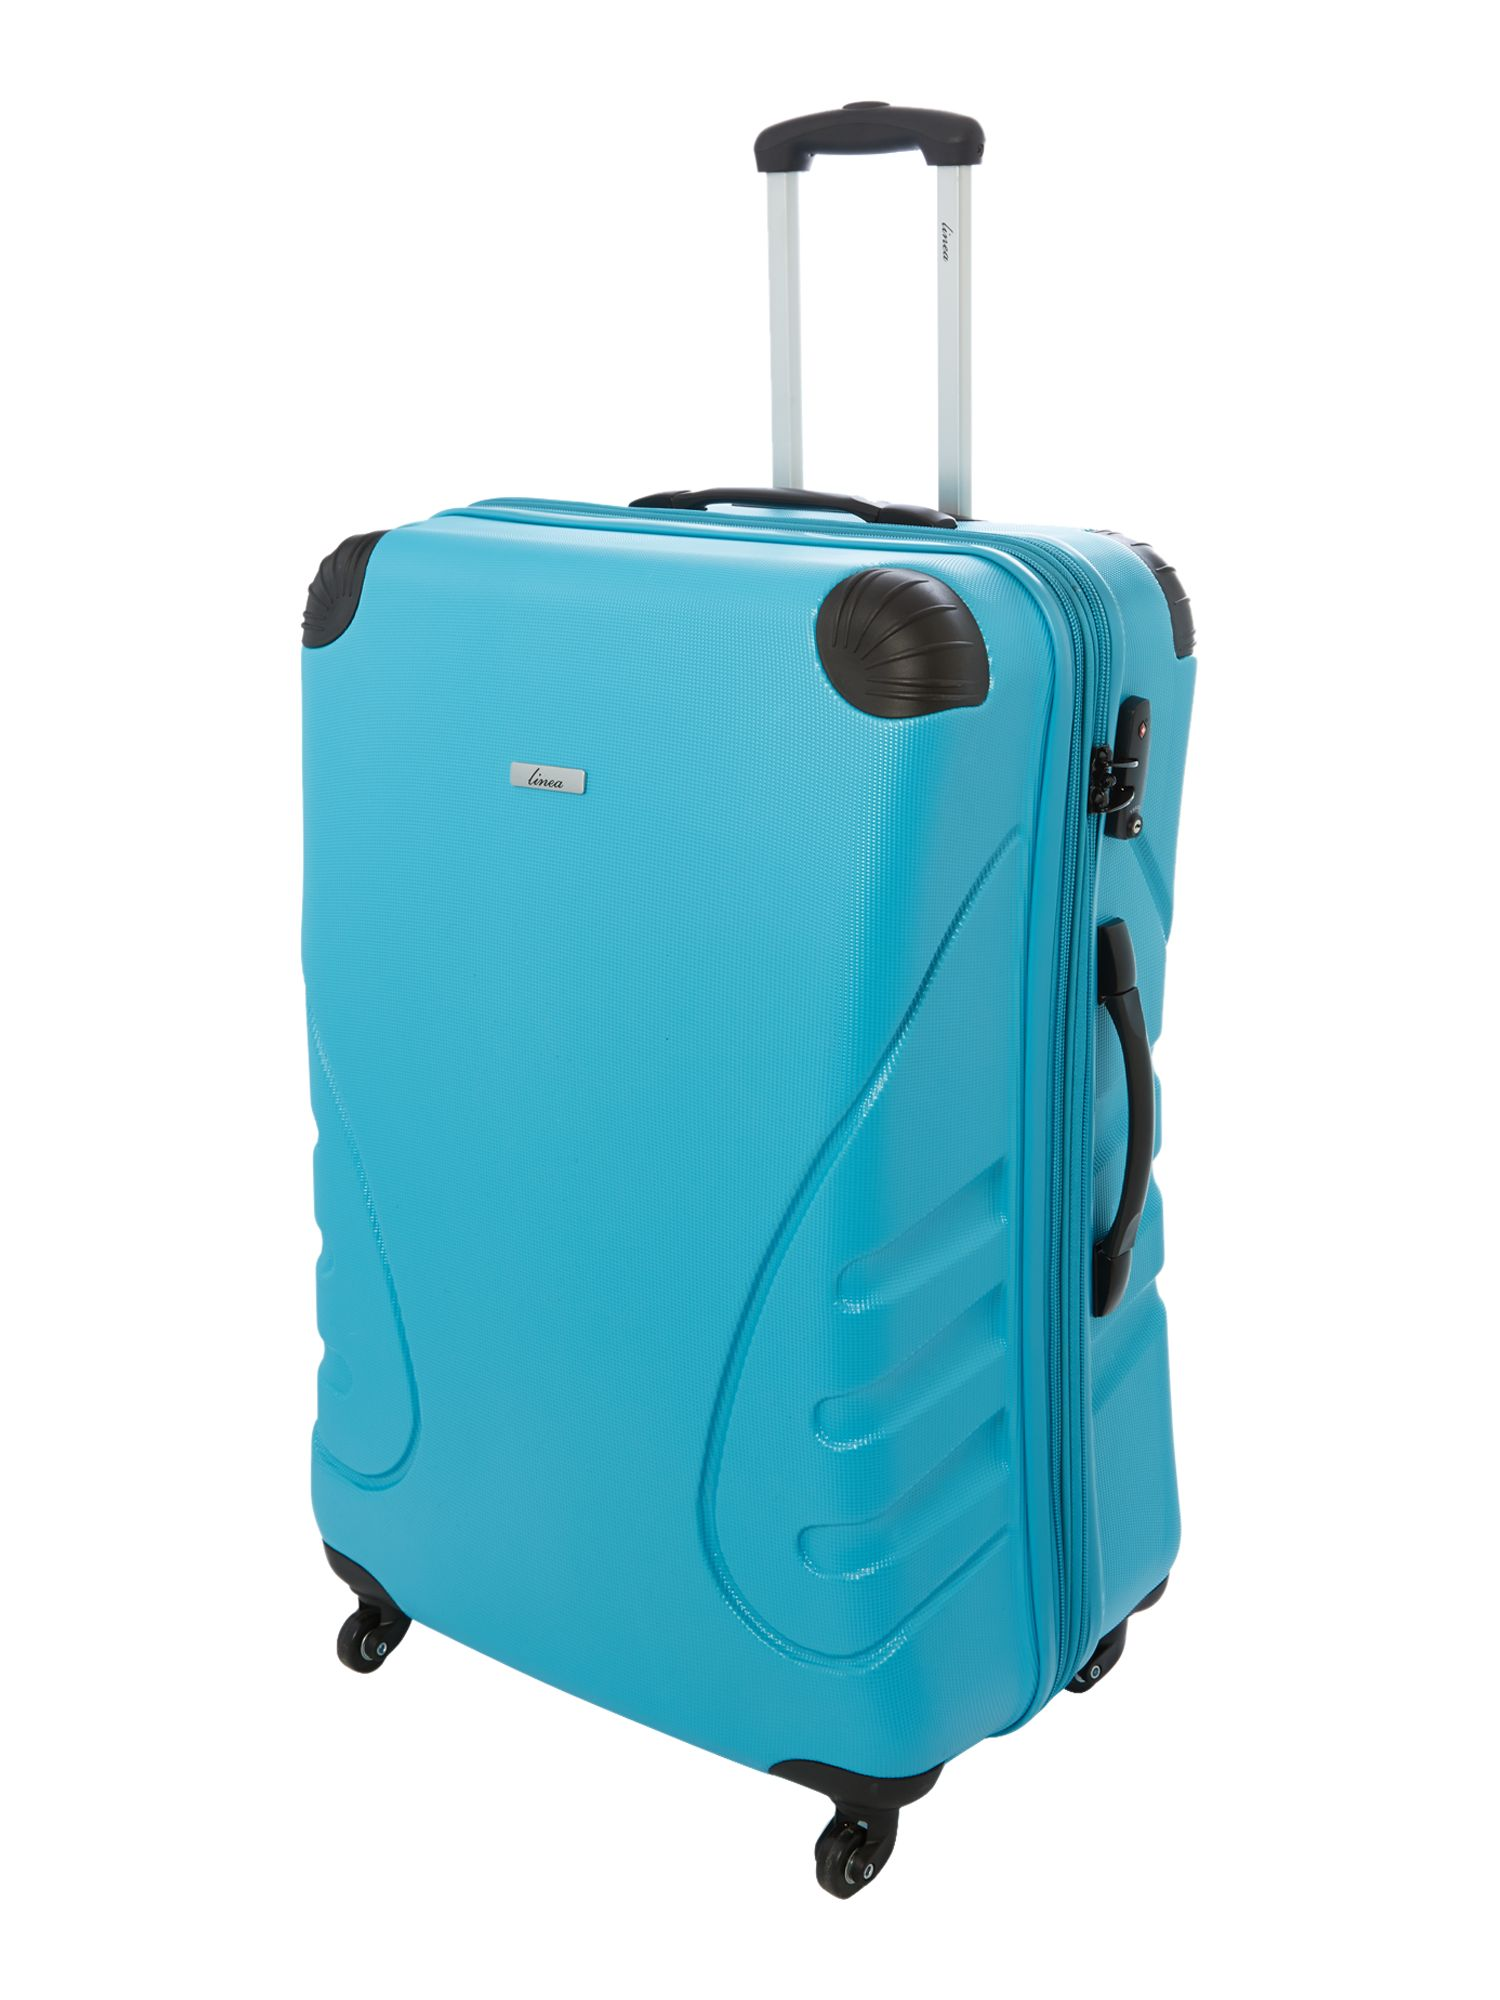 Shell aqua luggage range